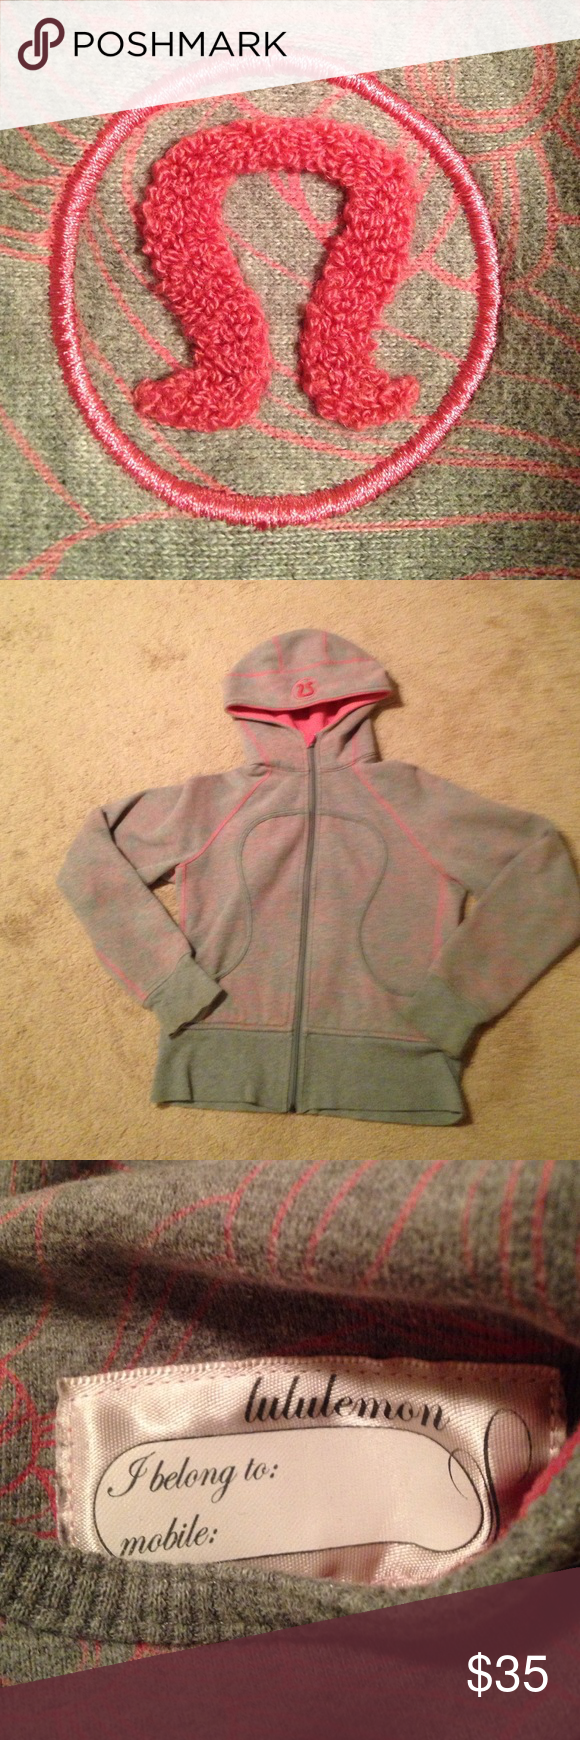 """Gray with pink Lululemon """"scuba"""" hoodie Lululemon gray with pink """"scuba"""" hoodie.  Great condition with exception of missing zipper pull.    Size is missing.  I believe it's about a 6 or a medium.   Make me an offer!!!! lululemon athletica Tops Sweatshirts & Hoodies"""